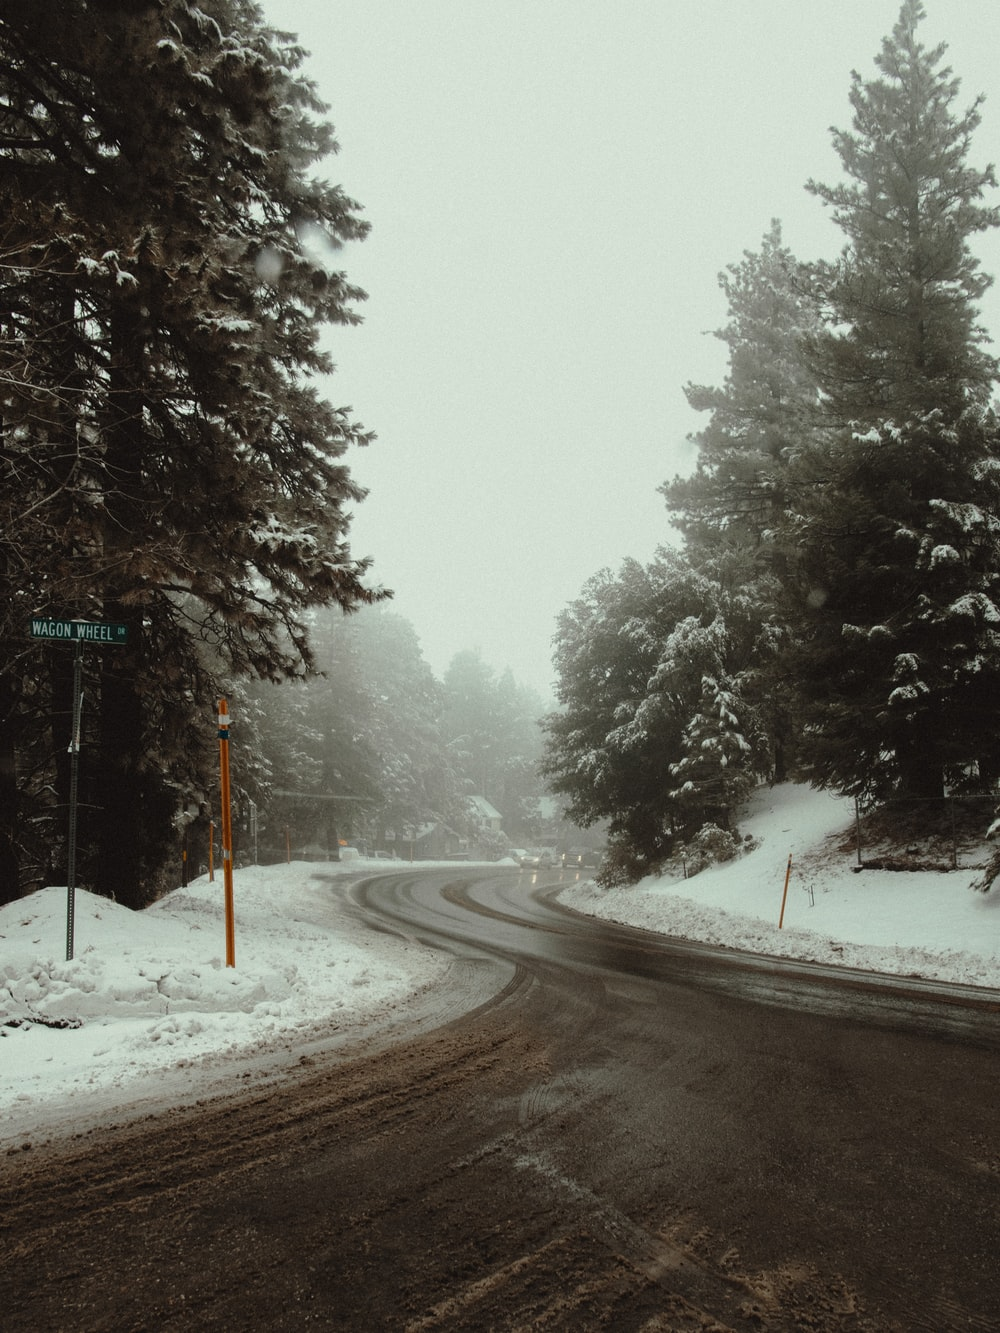 road in between trees covered with snow